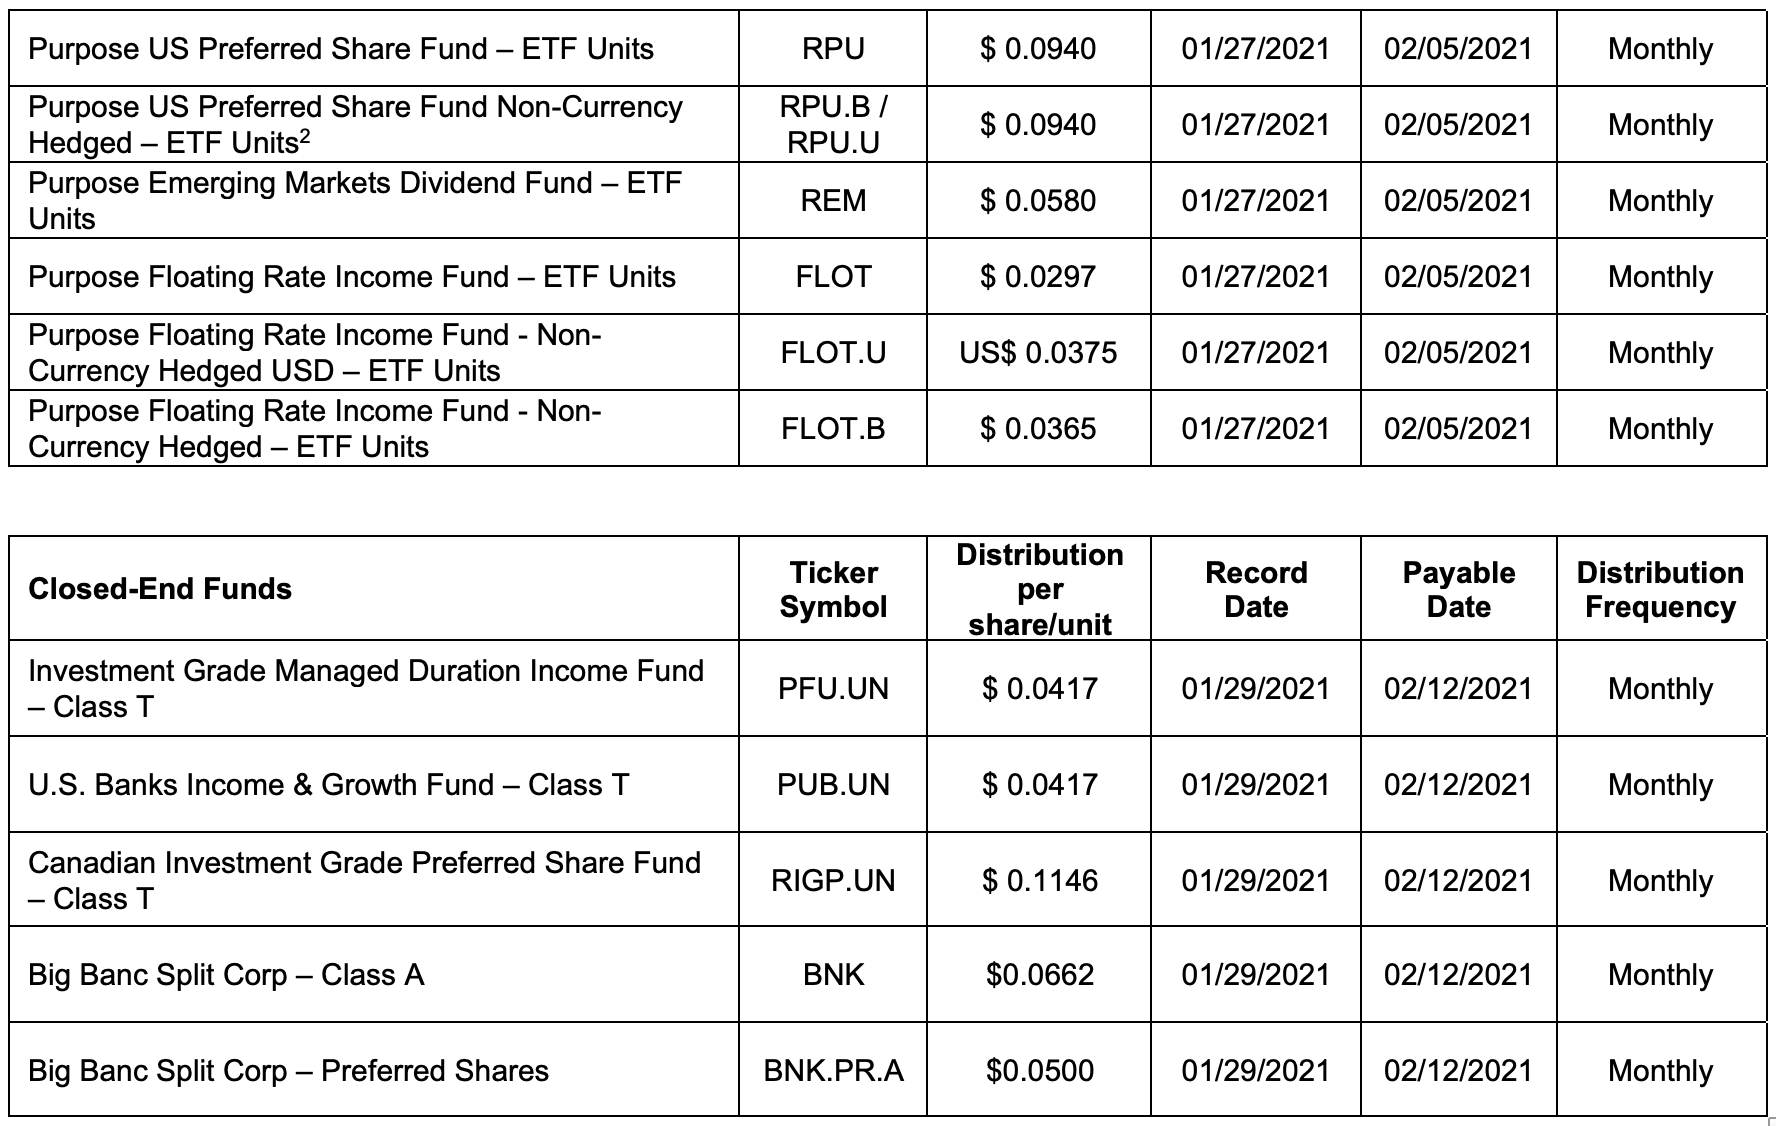 Purpose Investments distributions for the month of January 2021.